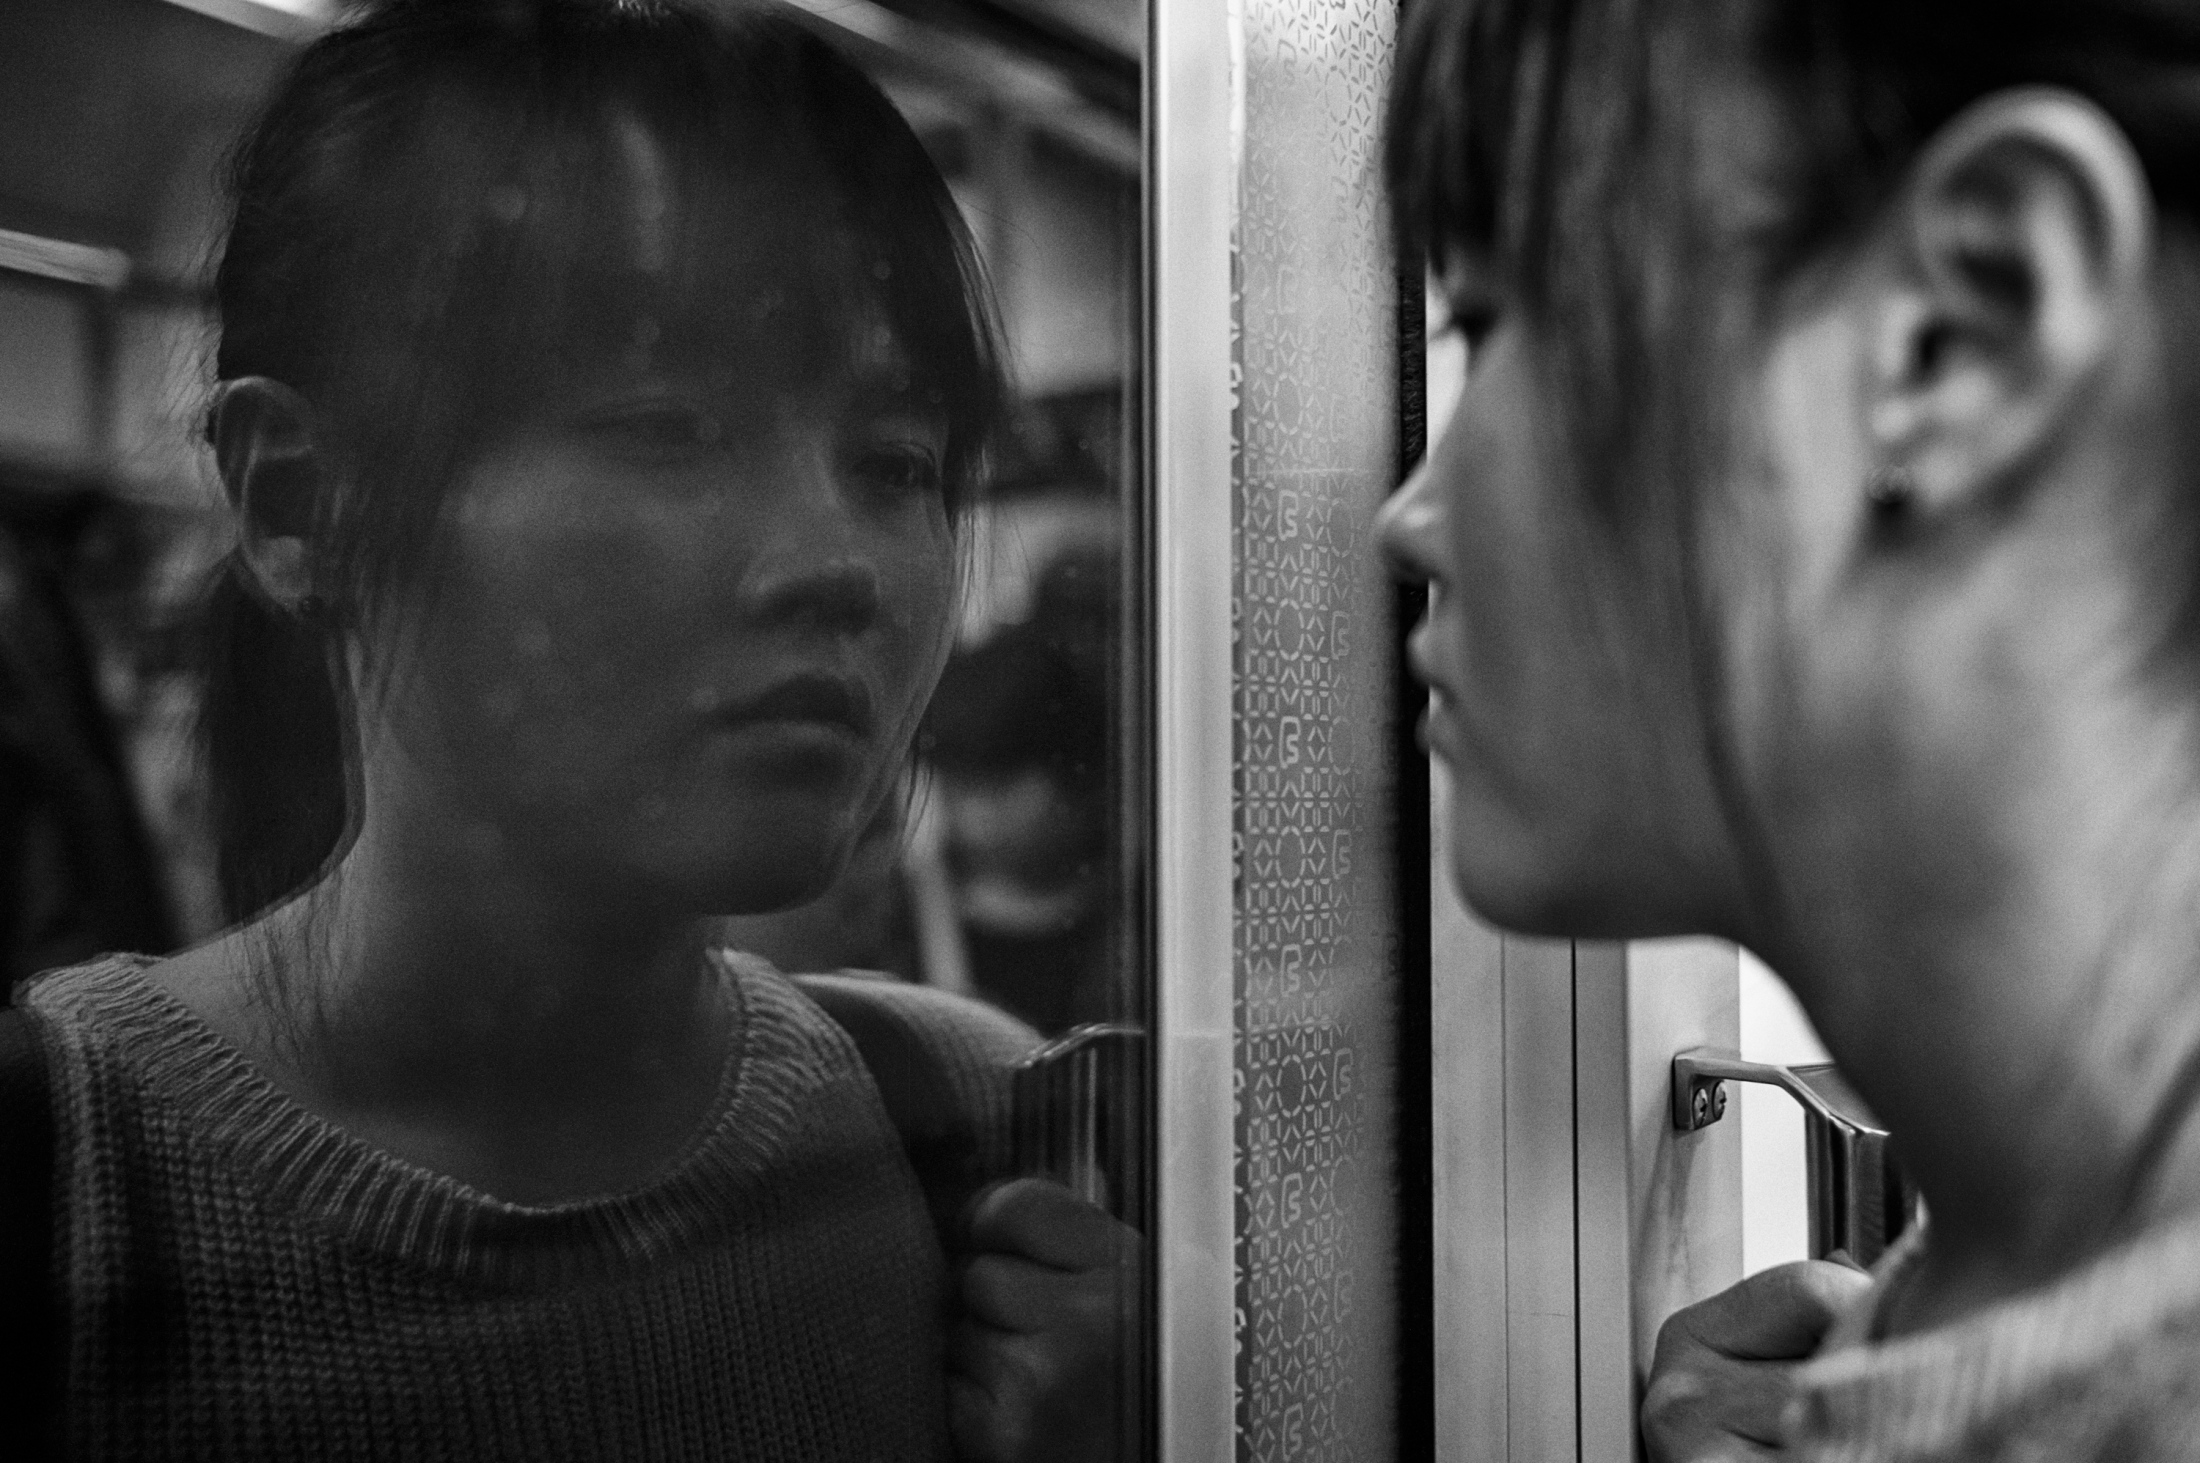 Kim Mi-seon stands and holds a grip in a subway train on her way to a barista training center for the blind on Oct. 21, 2013 in Seoul, South Korea. Mi-seon worked at Samsung Electronics LCD factory in 1997, and had diagnosed with multiple sclerosis in 2001. She also got a visual impairment as a side effect of her disease. She applied for industrial accident compensation insurance and pension to COMWEL, Korea Workers' Compensation & Welfare Service in 2011, and after years of struggle at the court against COMWEL and Samsung, she won her case on Feb. 10, 2017.